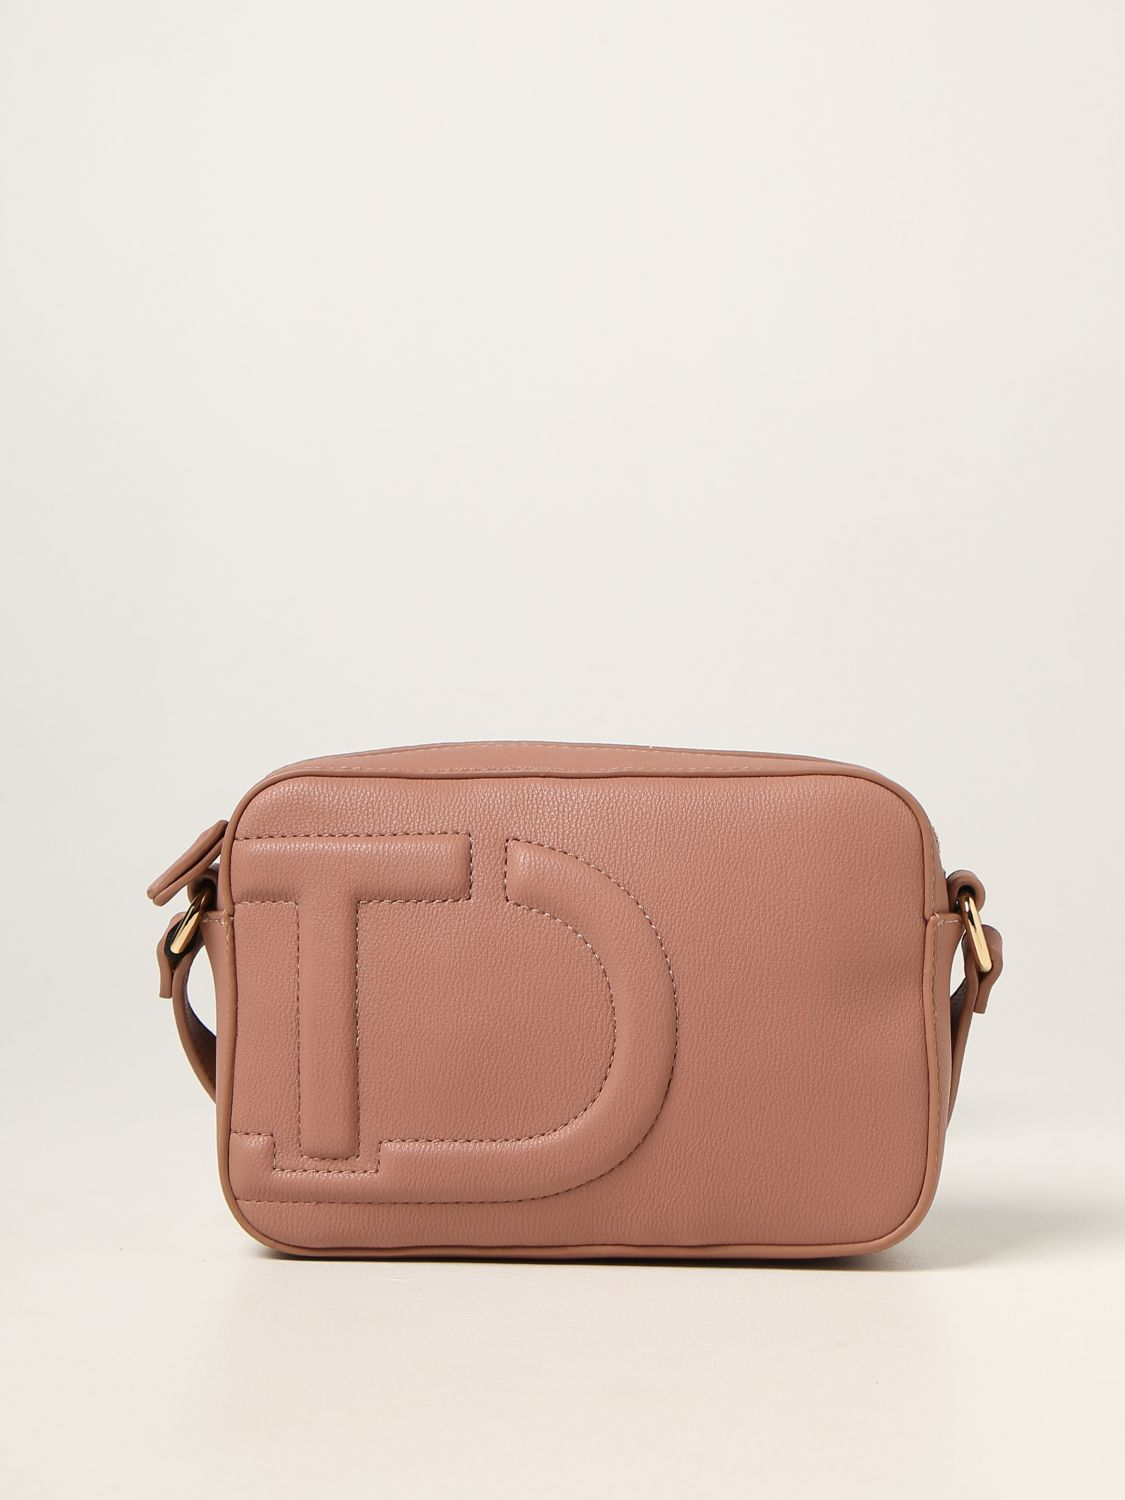 SHOPPING ON LINE TWINSET MILANO BORSA ATRACOLLA IN ECOPELLE NEW COLLECTION PREVIEW FALL WINTER 2022-2